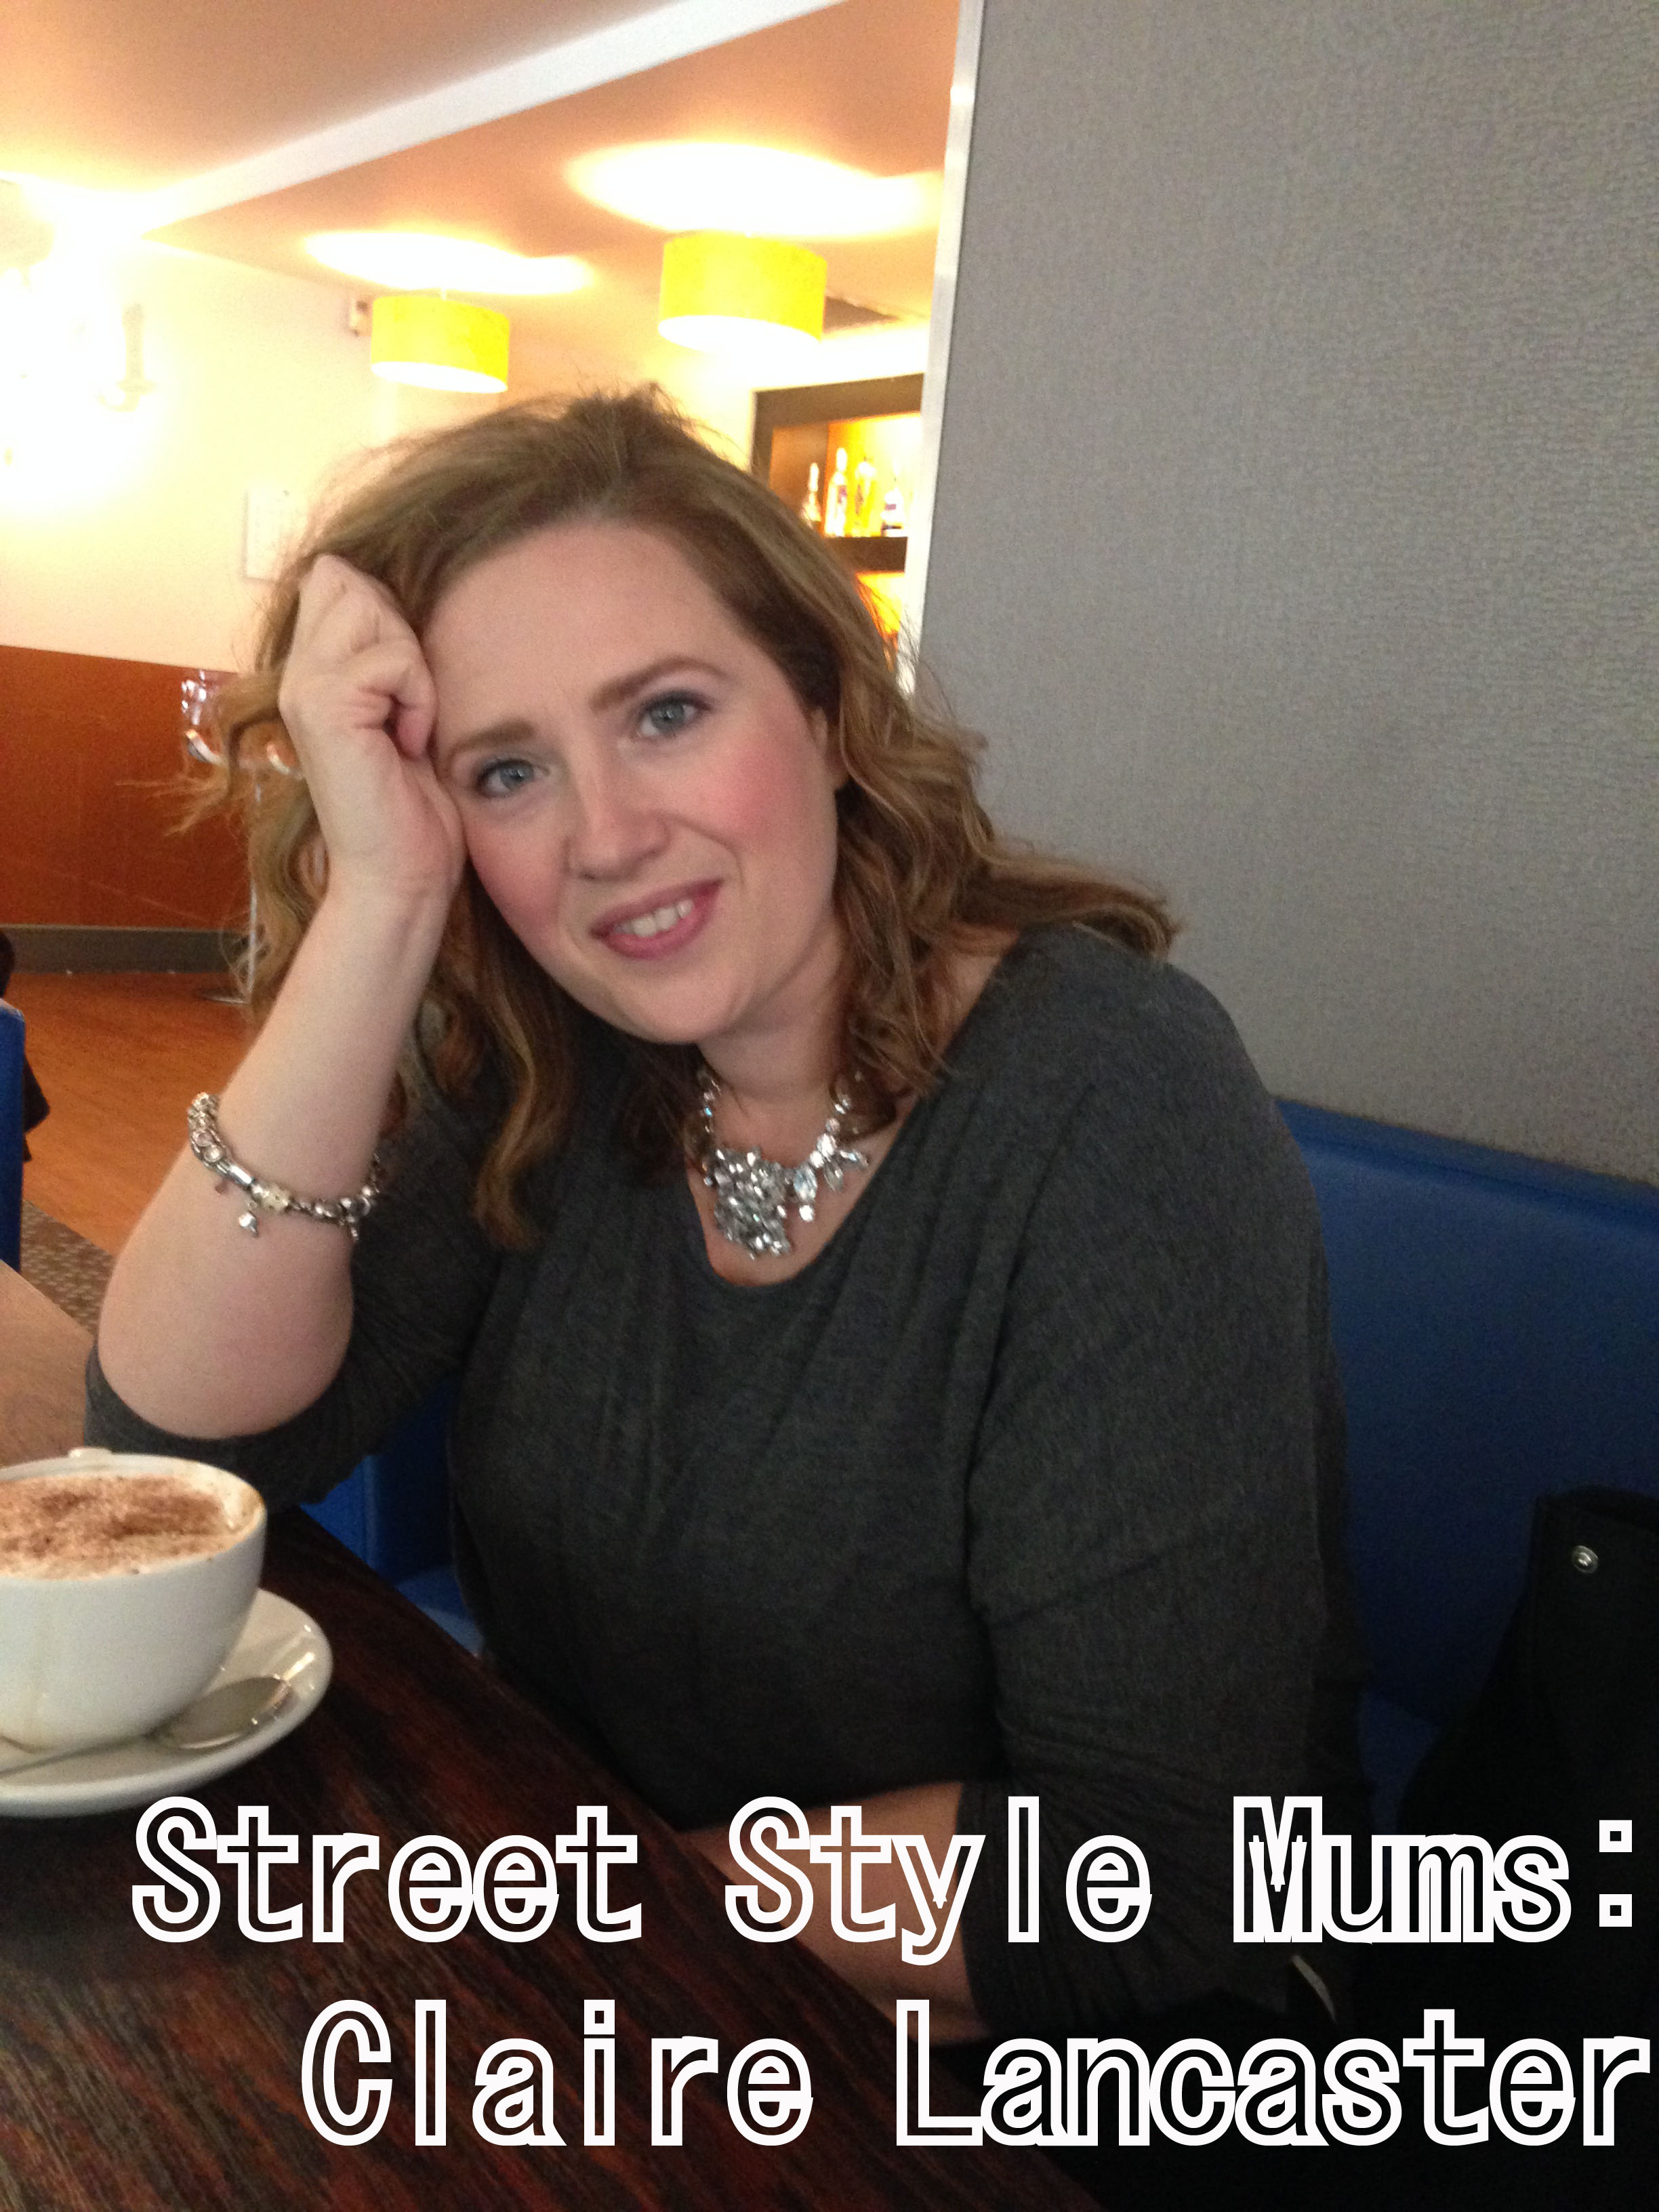 Street Style Mums Claire Lancaster